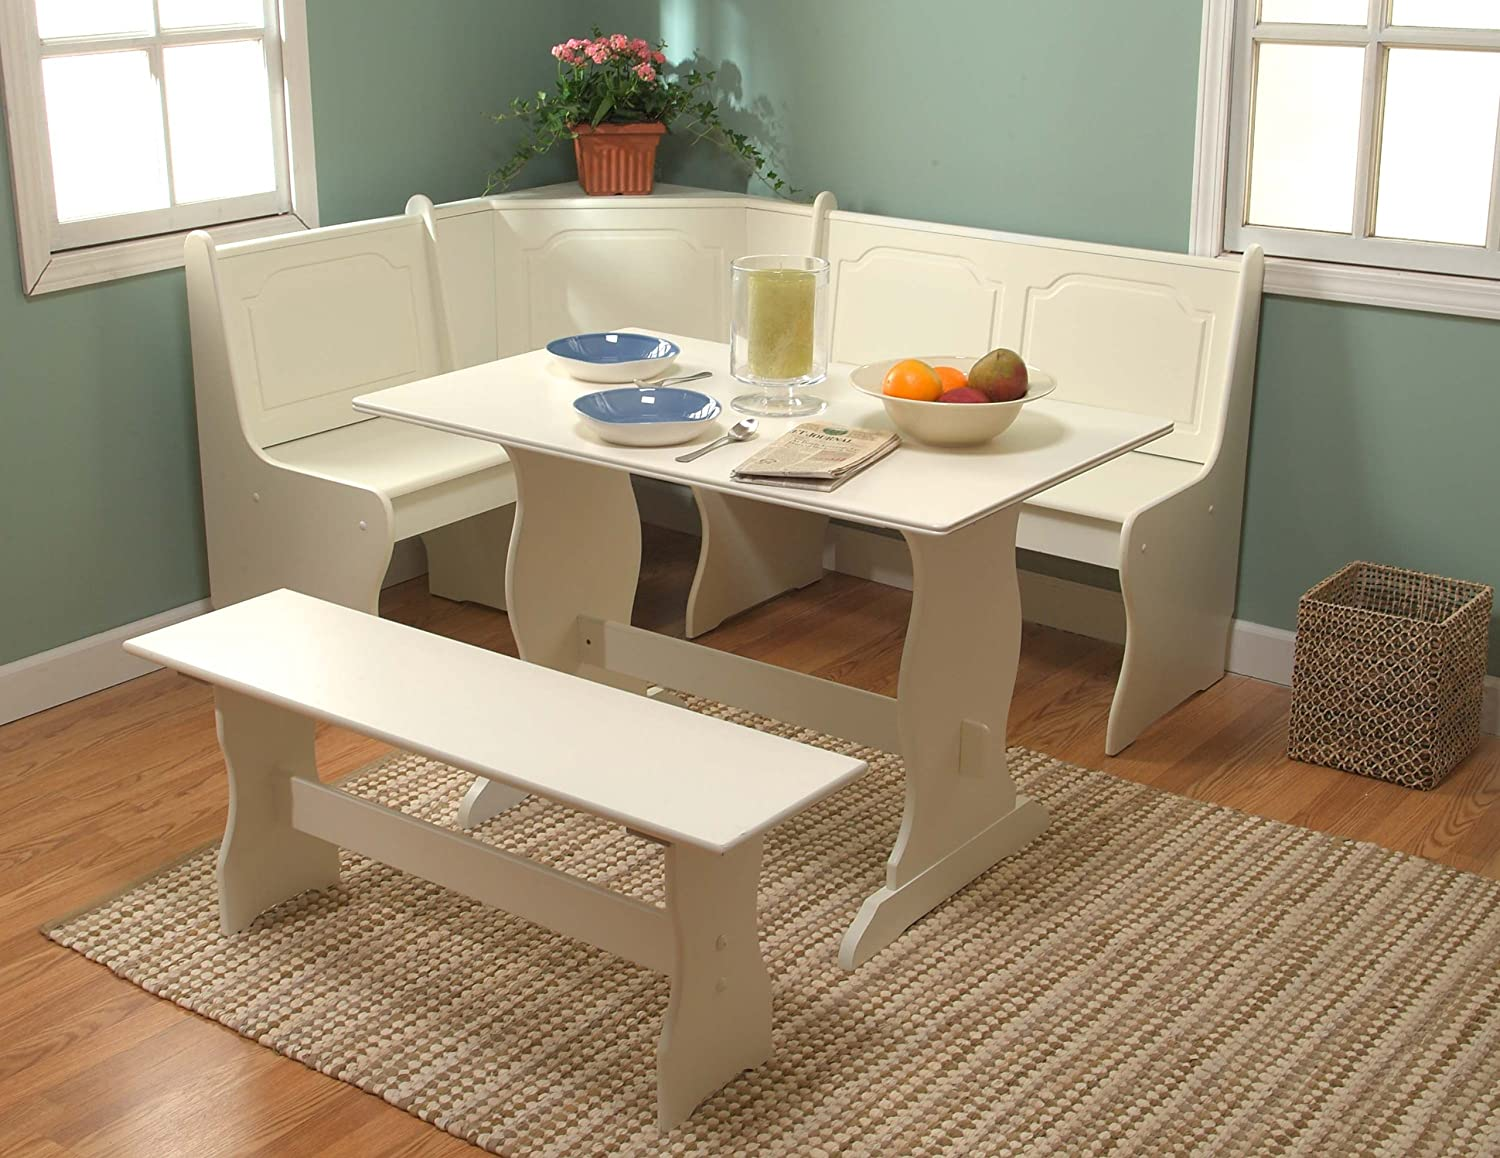 Amazoncom Target Marketing Systems Piece Breakfast Nook Dining - Corner nook dining set uk corner nook dining set with chairs kitchen